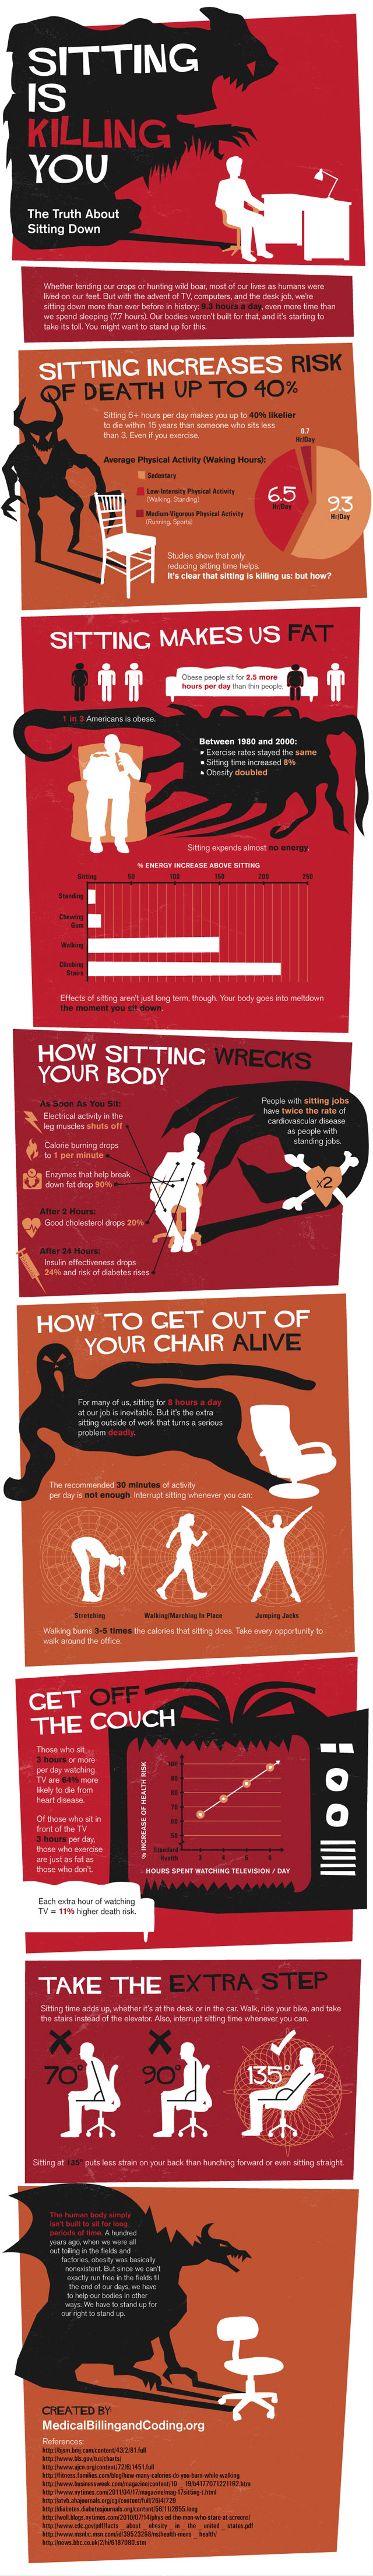 sitting down infographic